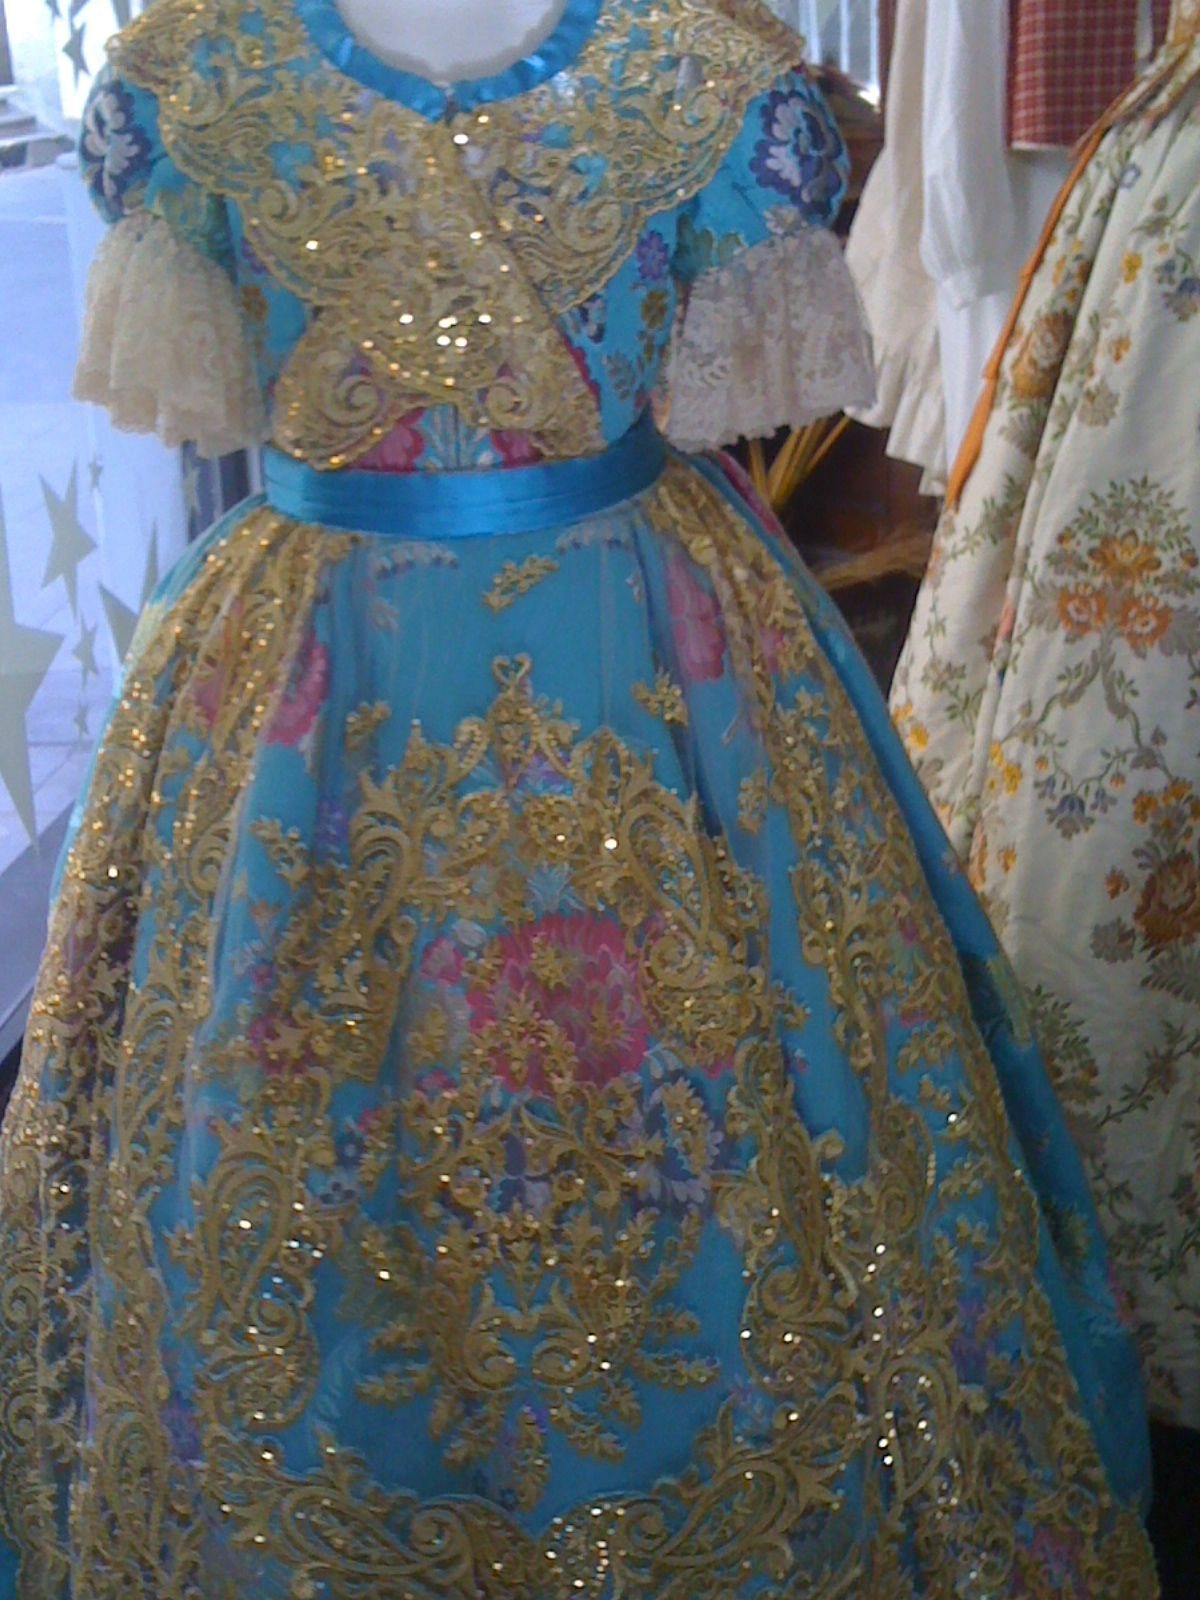 A traditional fallera costume with lantern sleeves, produced by Ernesto Sostoa.